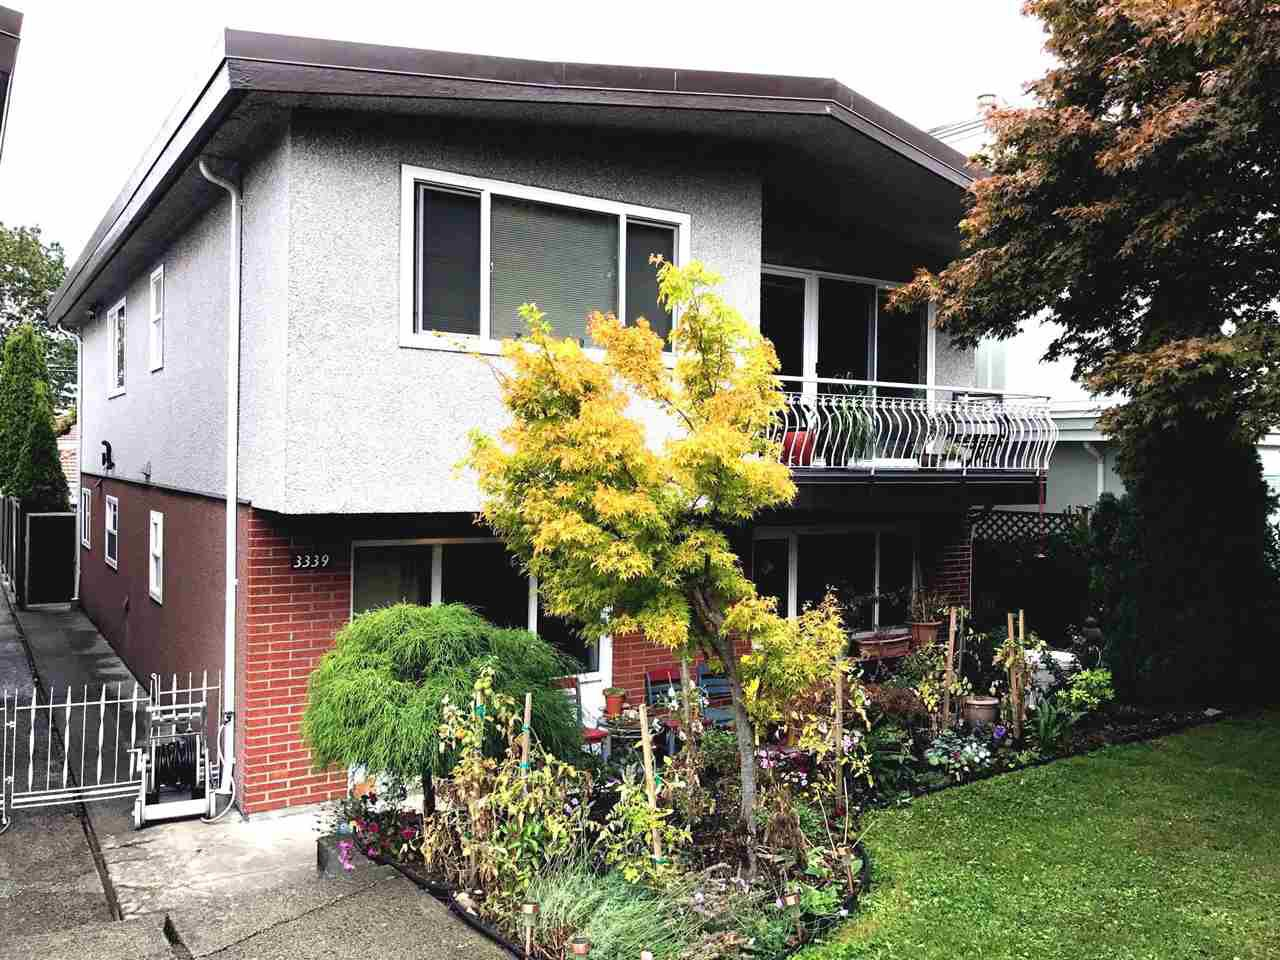 Main Photo: 3339 E 23RD Avenue in : Renfrew Heights House for sale (Vancouver East)  : MLS®# R2209478